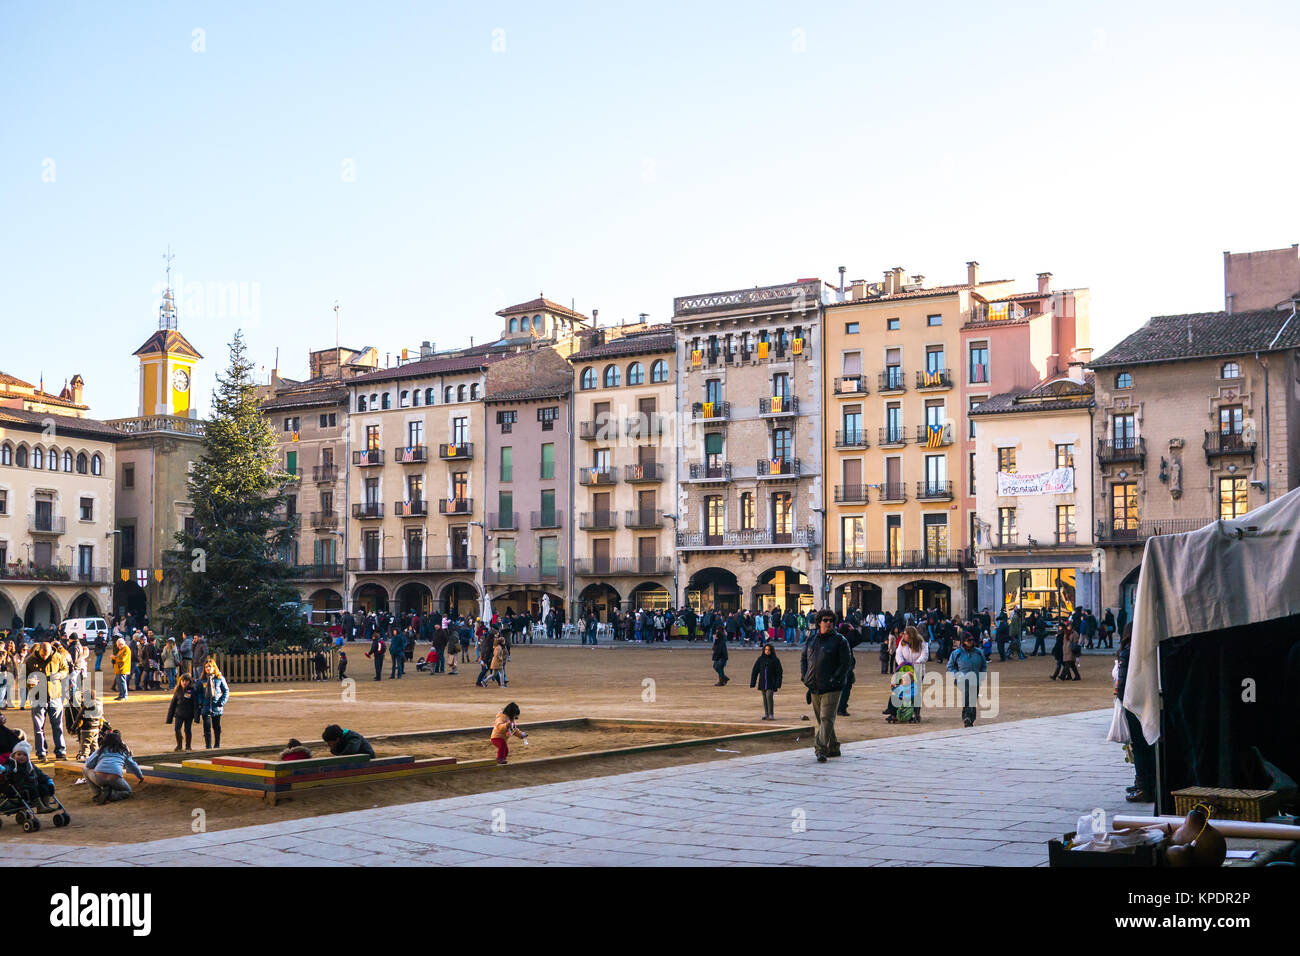 Vic, Spain - December 6, 2013 - View of the main square of Vic village, Spain - Stock Image